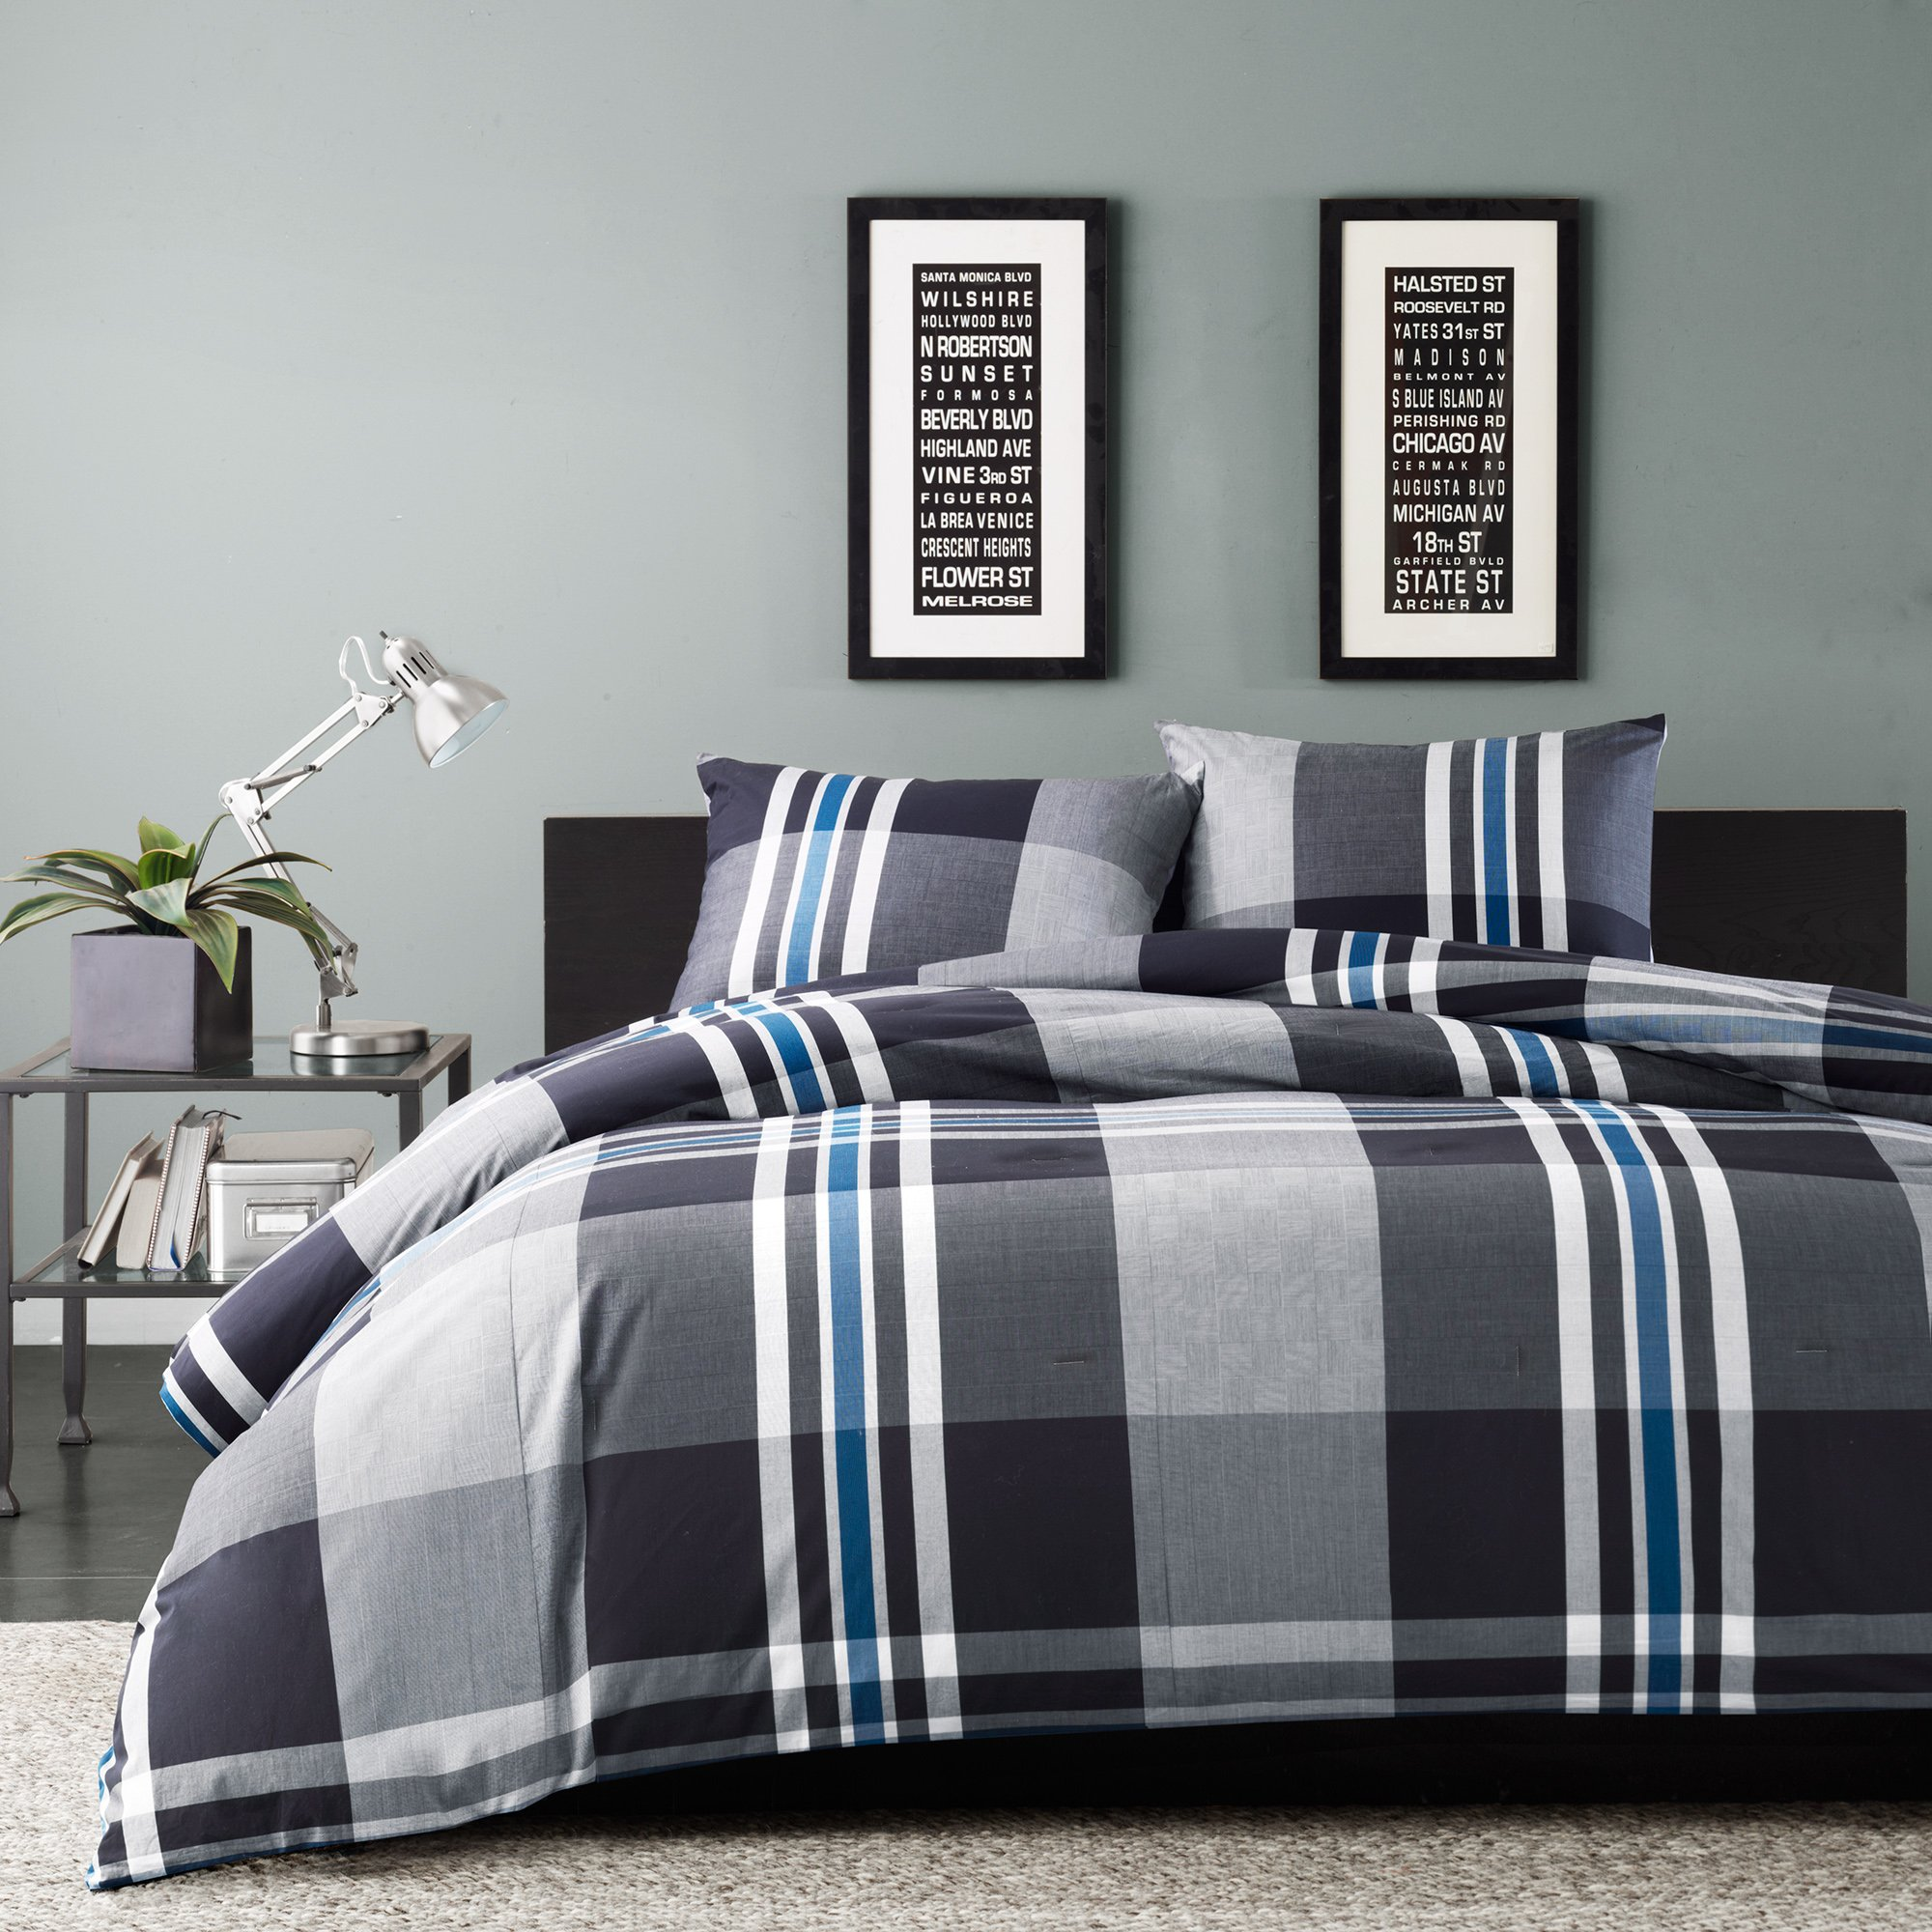 Ink+Ivy Nathan Twin Comforter Set Teen Boy Bedding - Grey, Plaid – 2 Piece Bed Sets – 100% Cotton Yarn Bed Comforter by Ink+Ivy (Image #2)